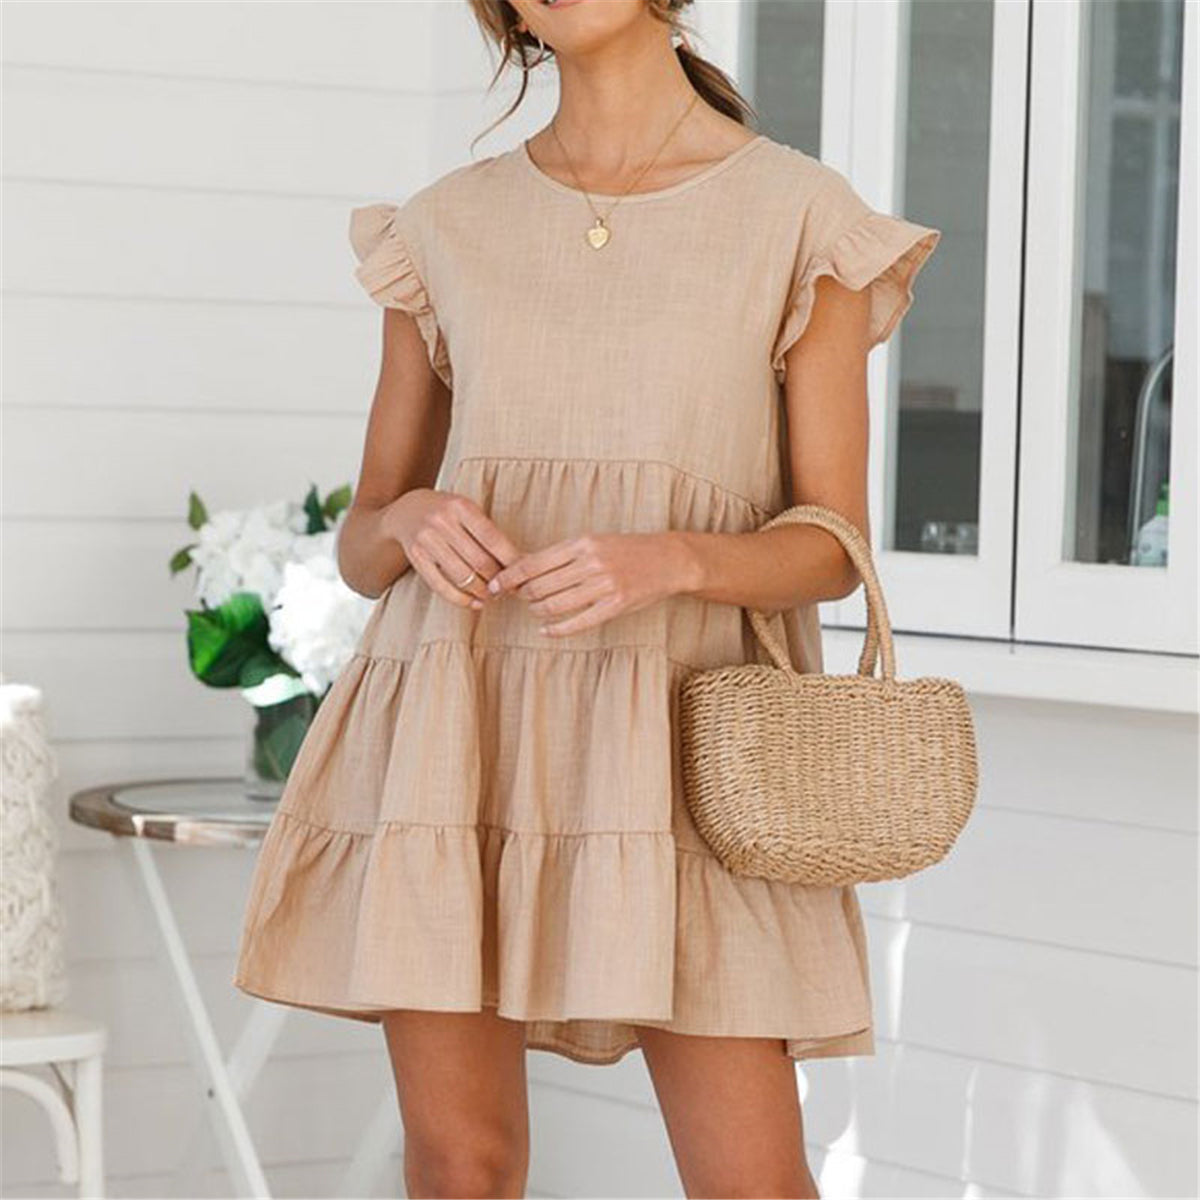 Lovely Plain Loose Flounce Embellished Vacation Dress